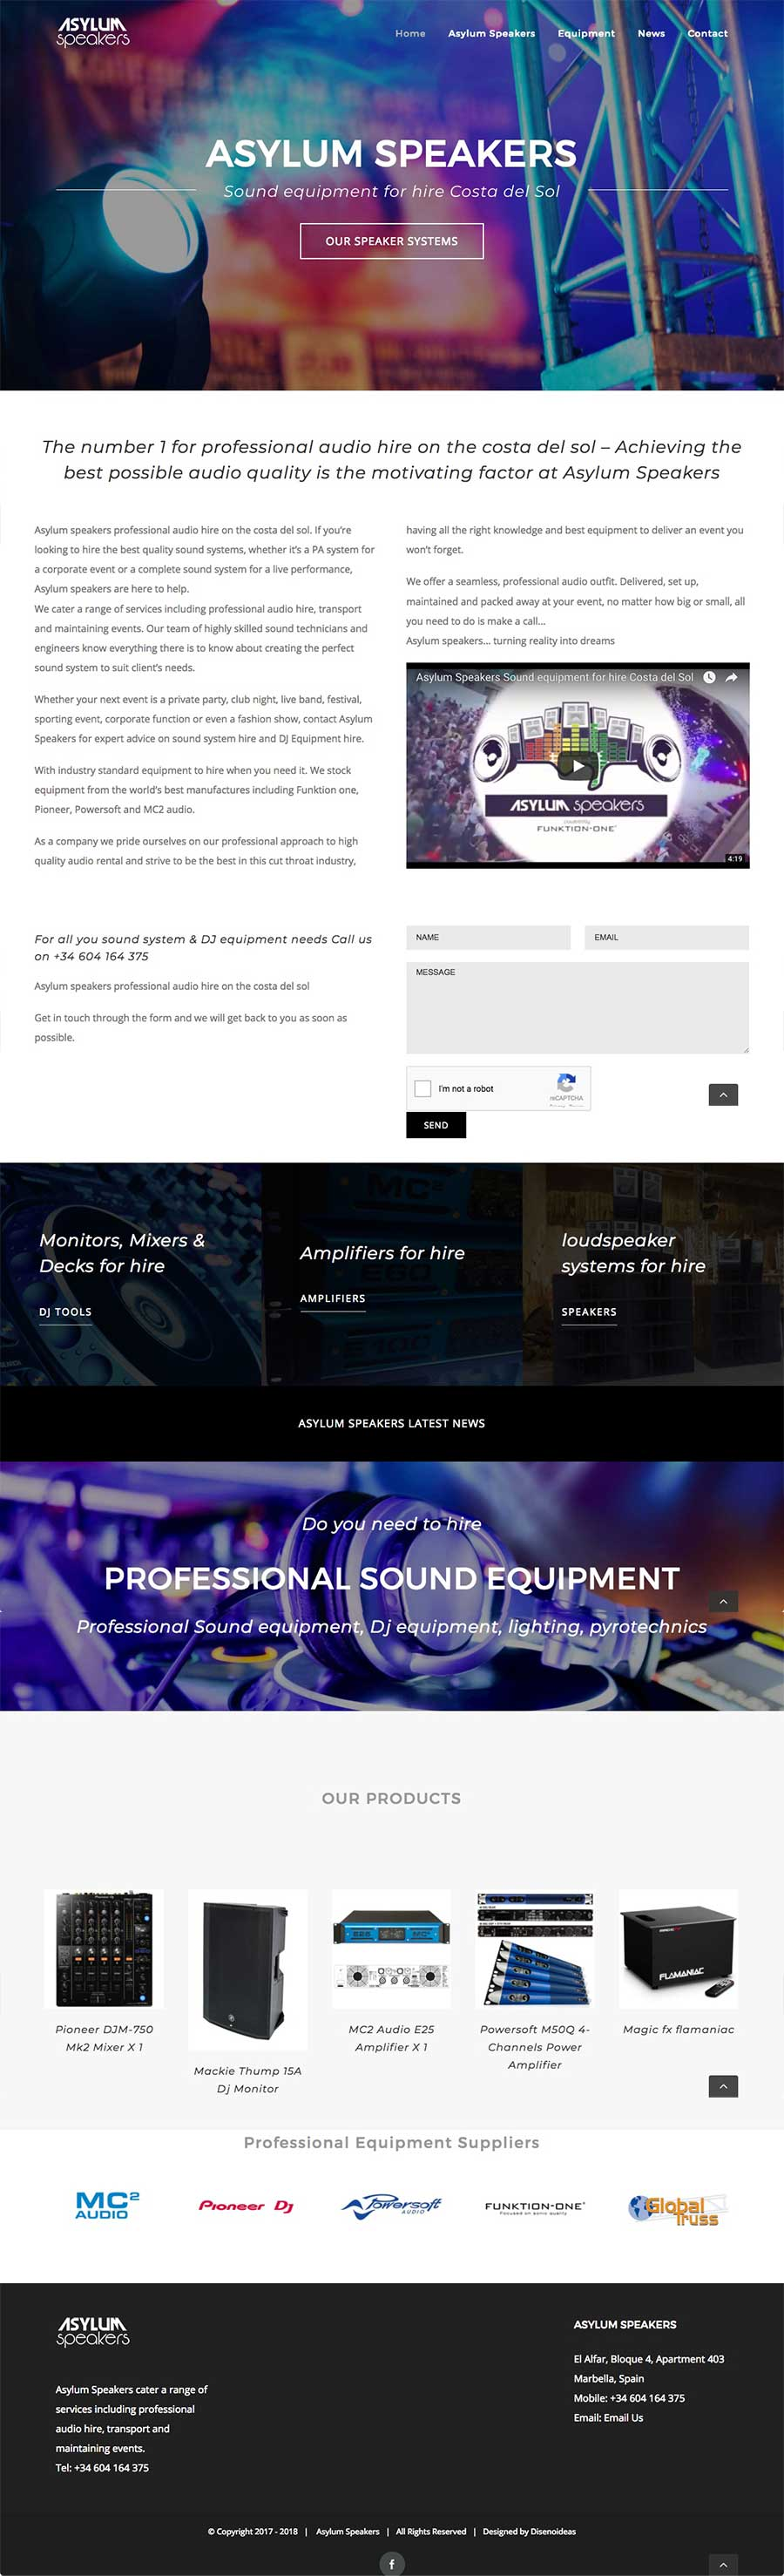 Website design for sound system hire company in Marbella, multilingual website design mobile friendly functionality